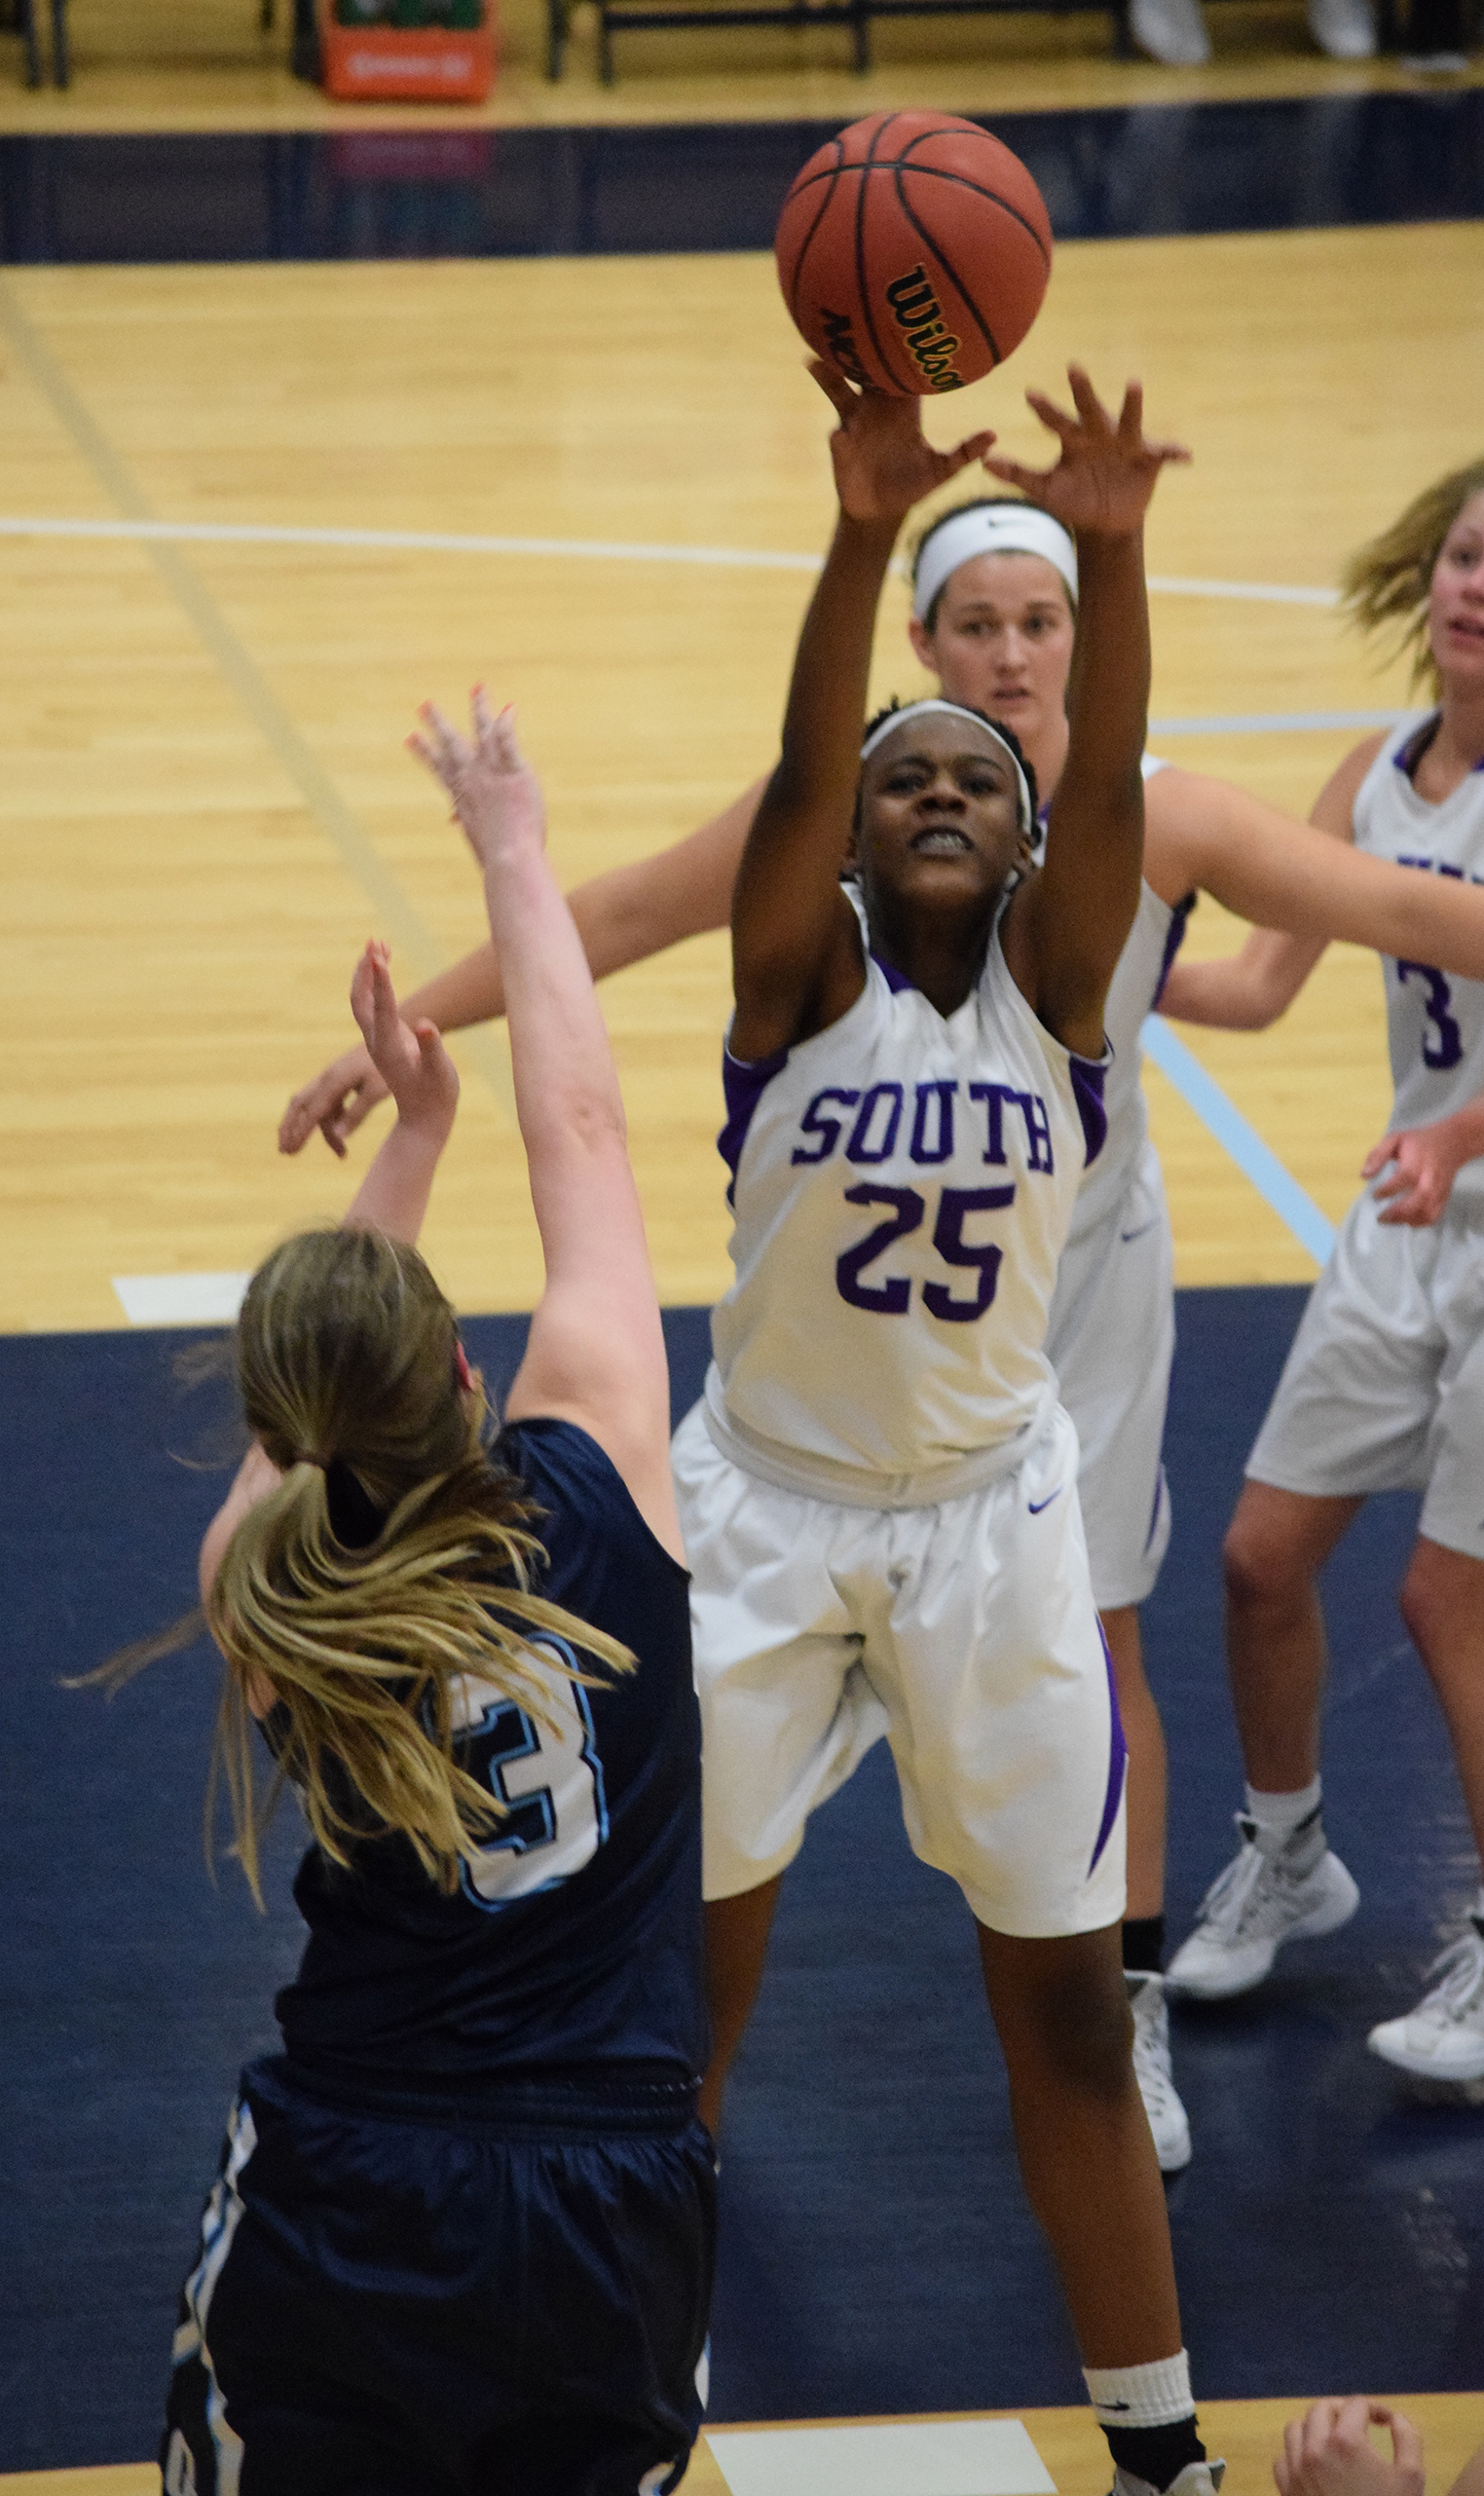 BRYCE MERENESS/Citizen photo Park Hill South freshman Alecia Westbrook (25), blocks a shot against Oak Park in the first round of the Class 5 District 16 tournament on Monday, Feb. 29 at Oak Park High School in Kansas City, Mo.